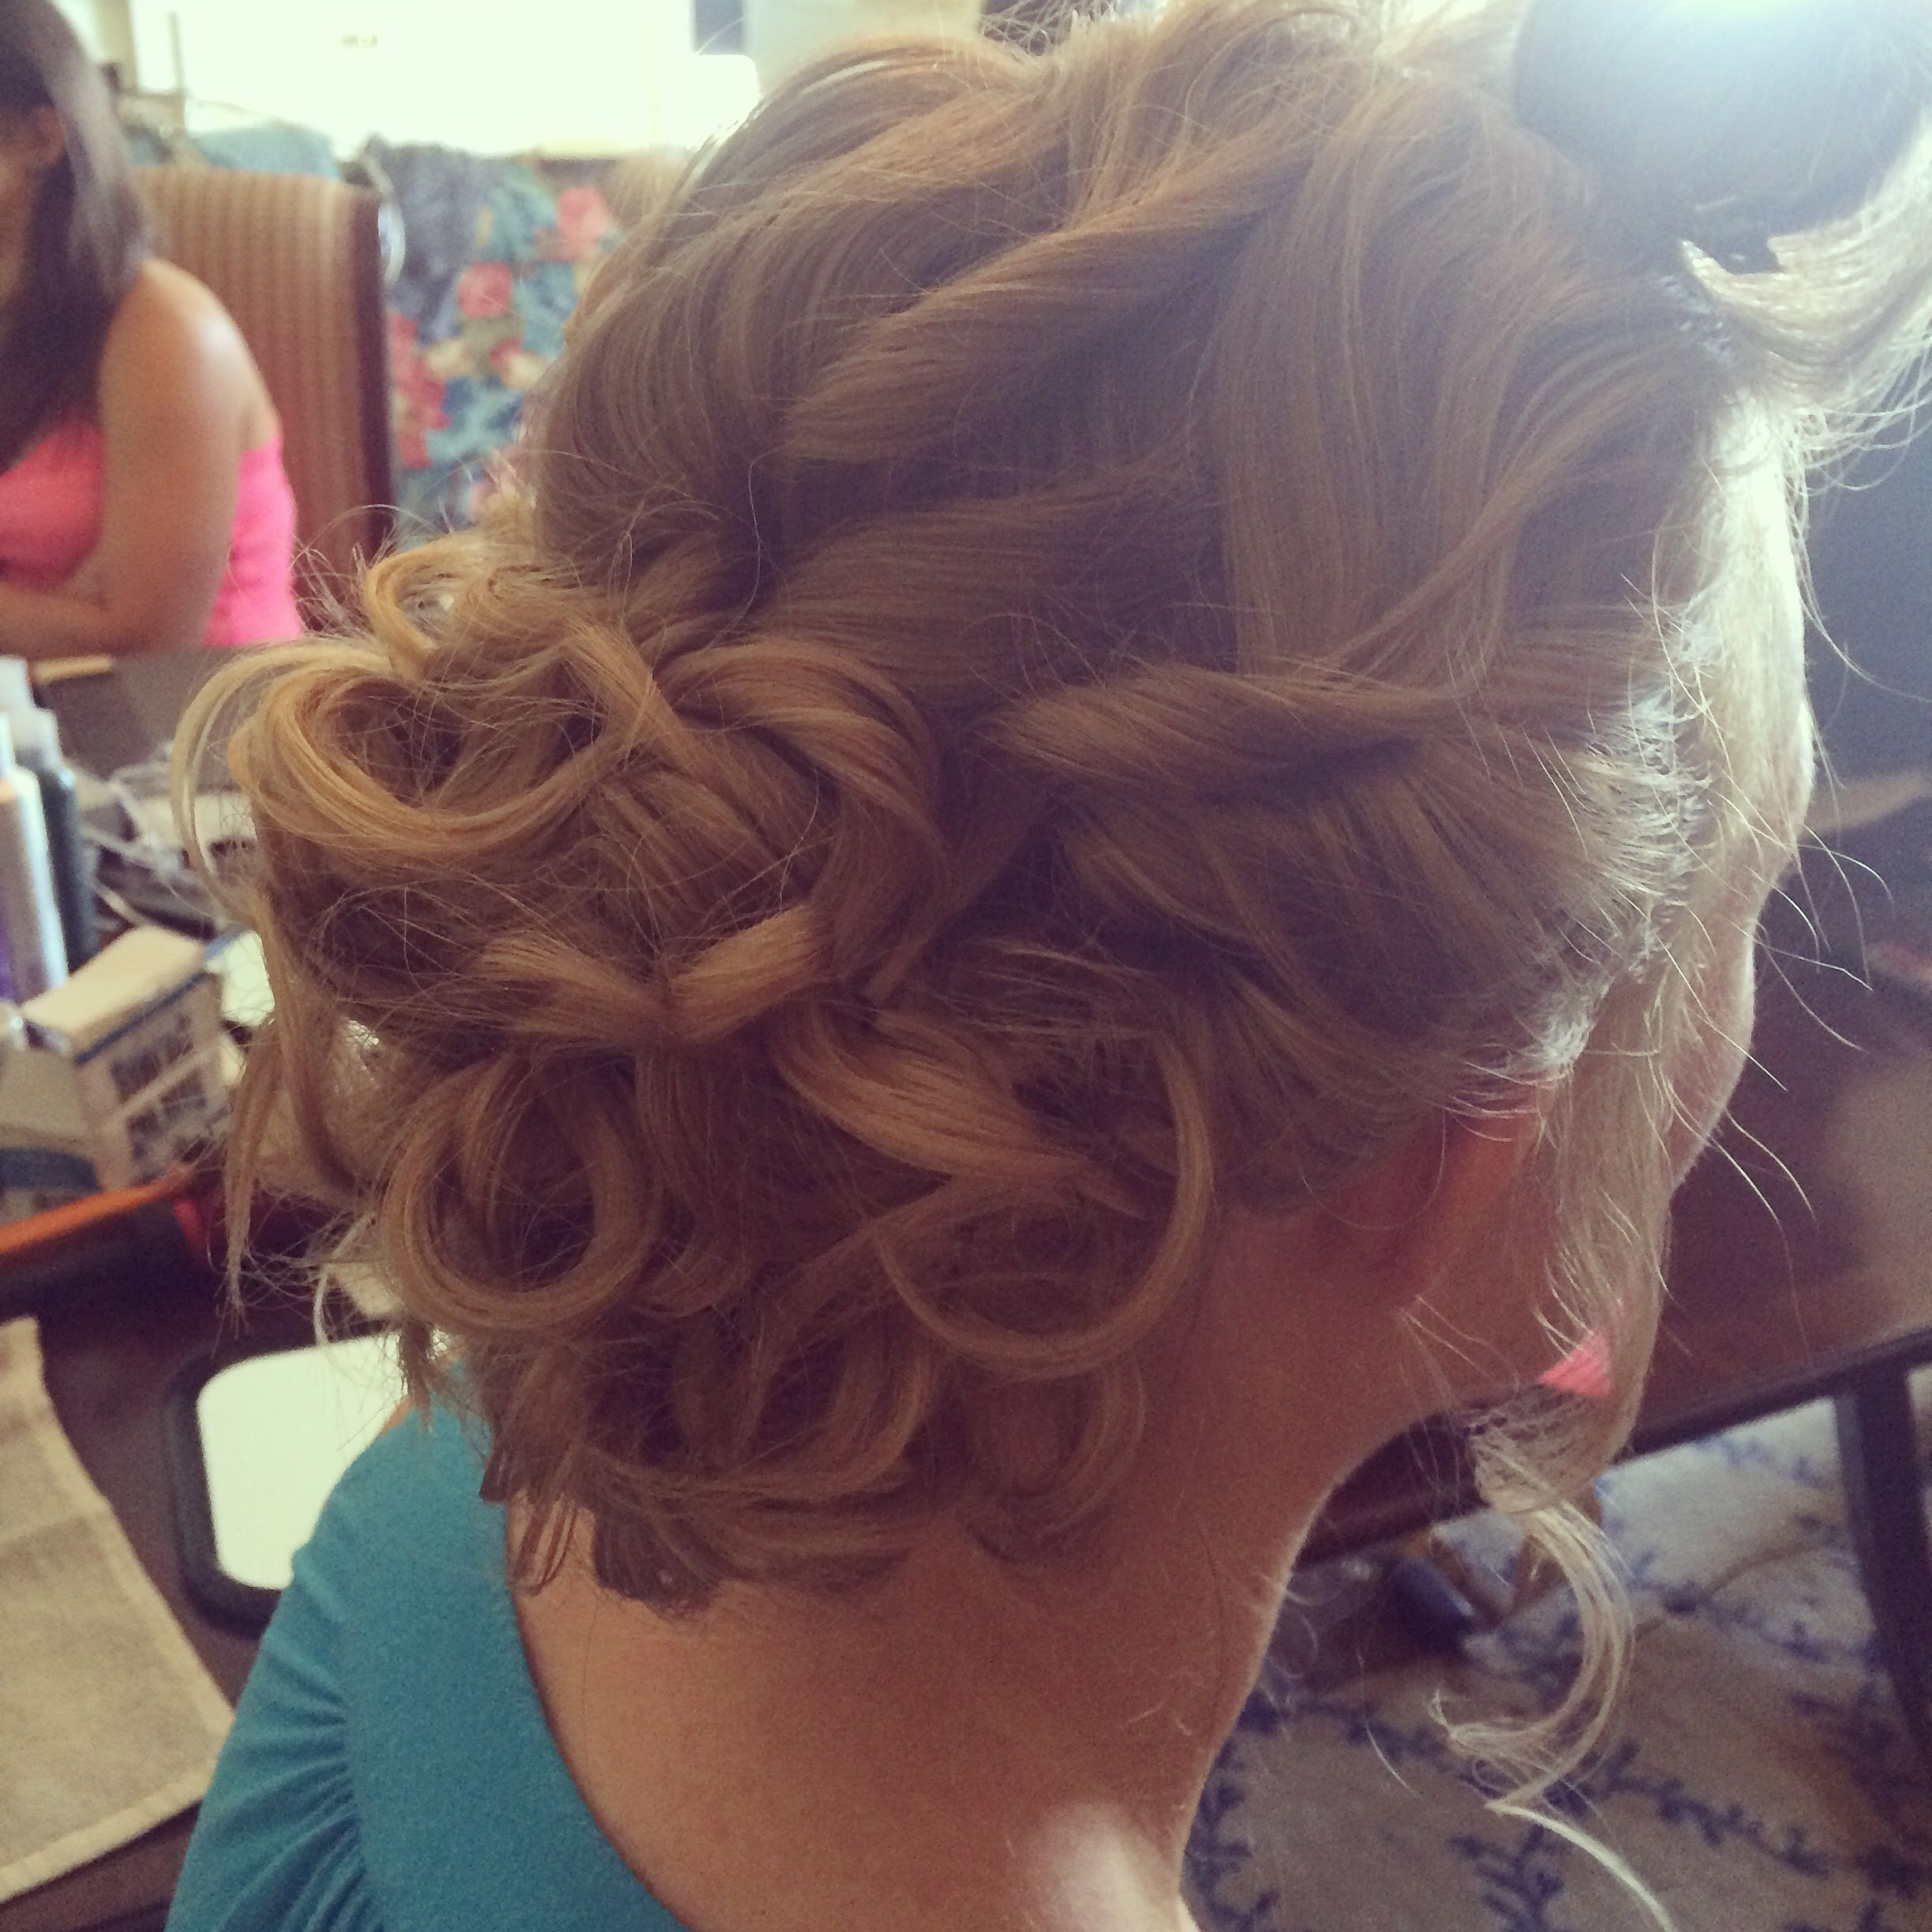 beachy blonde bun updo freelance bridal hairstylist servicing